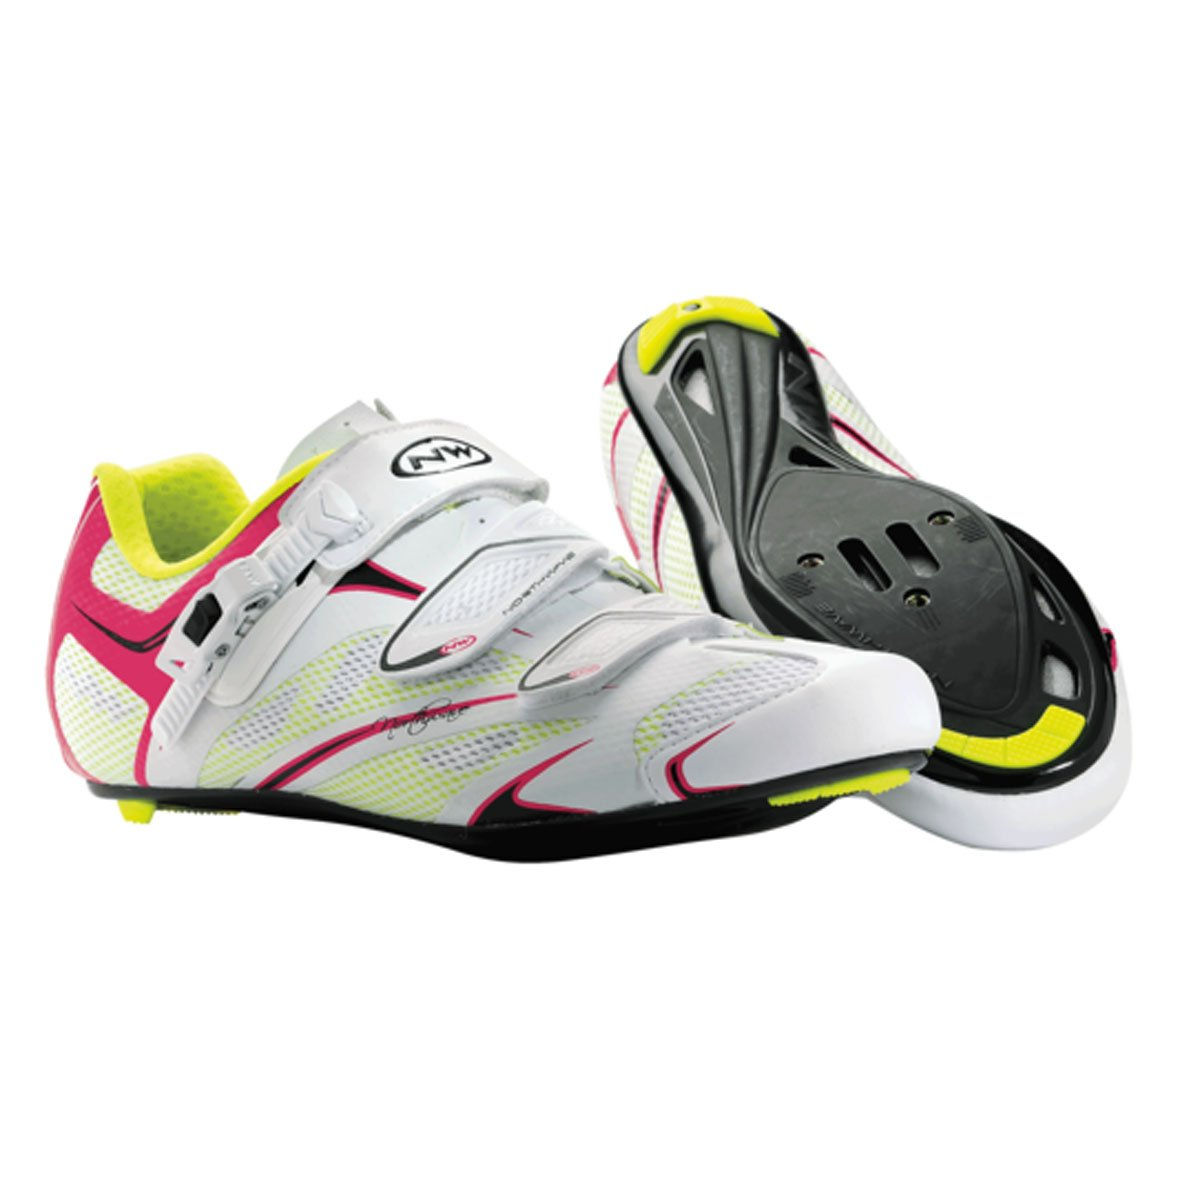 Amazon.com: Northwave Womens Starlight SRS Road Shoes - WHITE/FUCHSIA, 39: Health & Personal Care